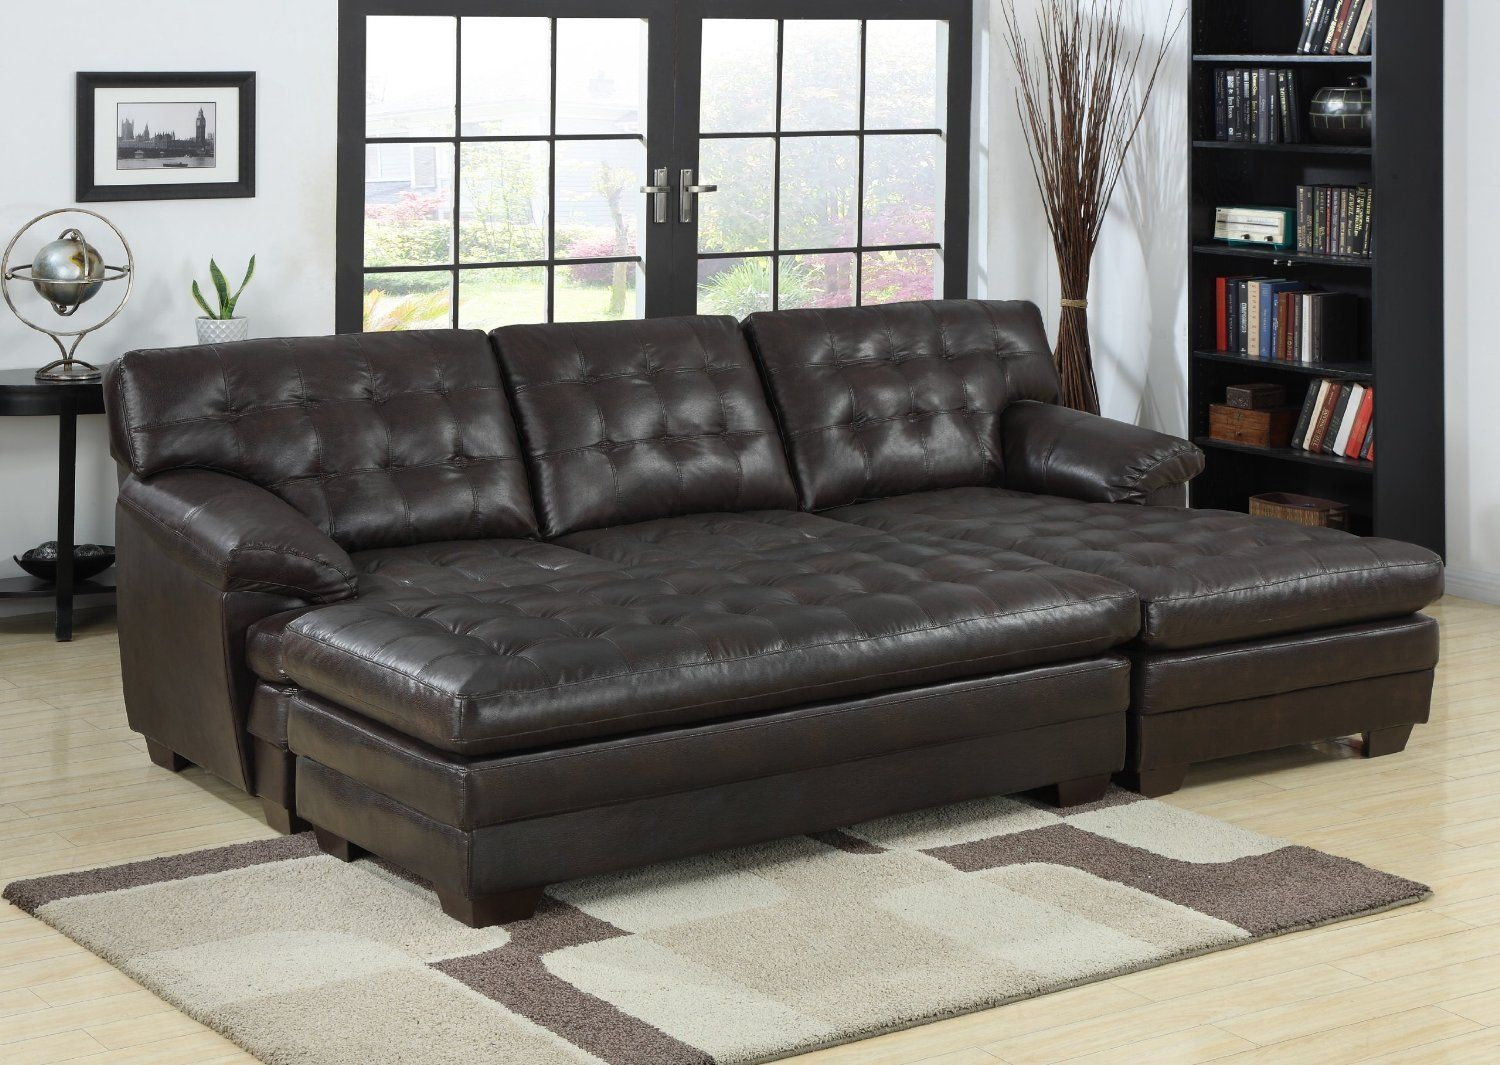 Amazon Com Homelegance 9739 Channel Tufted 2 Piece Sectional Sofa